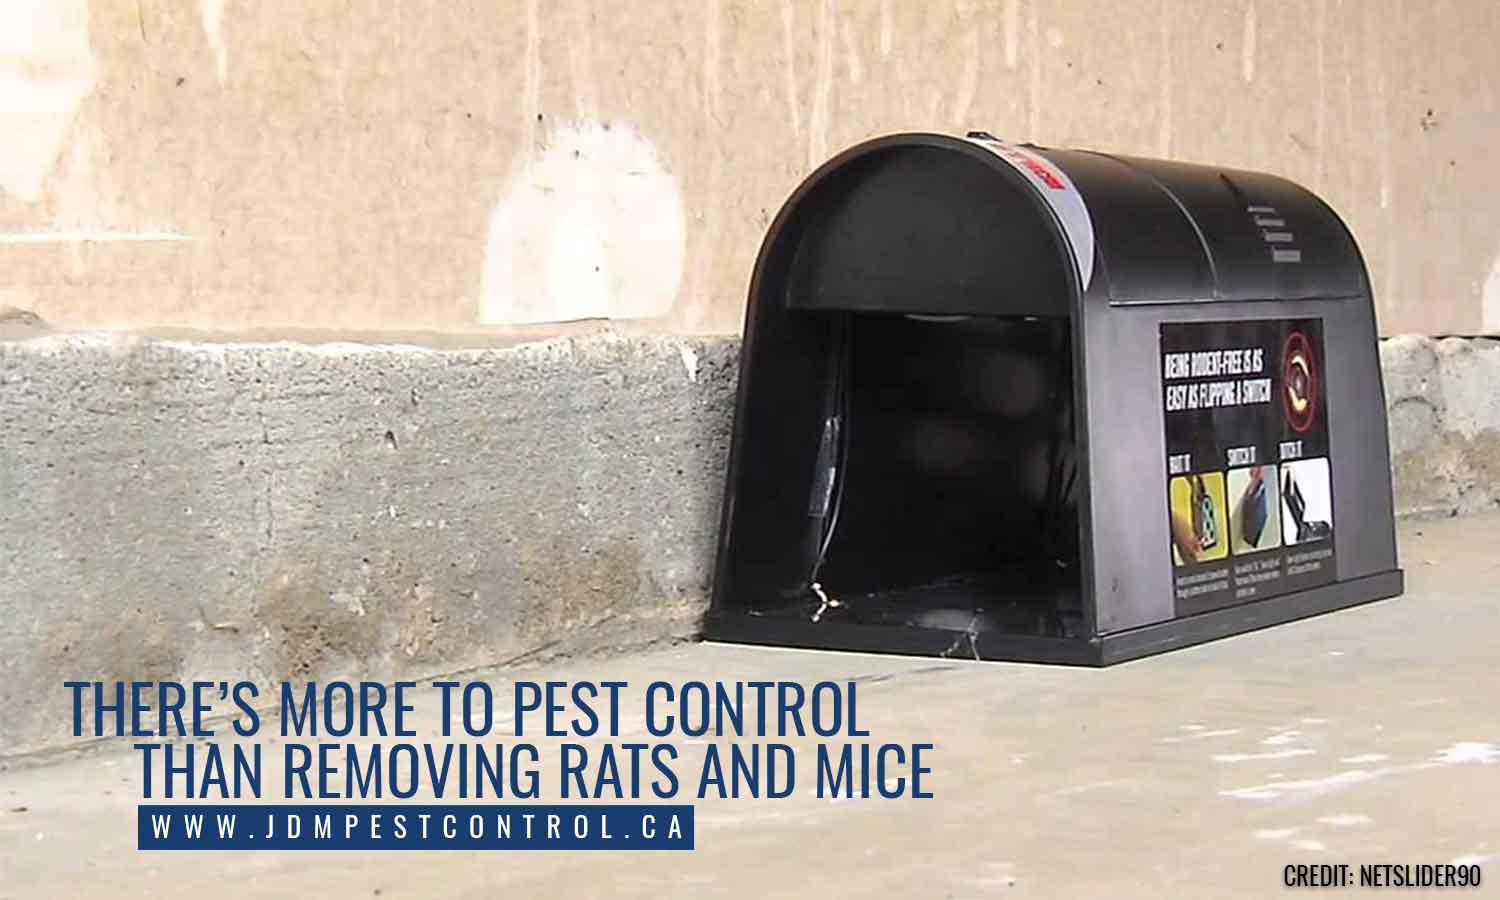 There's more to pest control than removing rats and mice